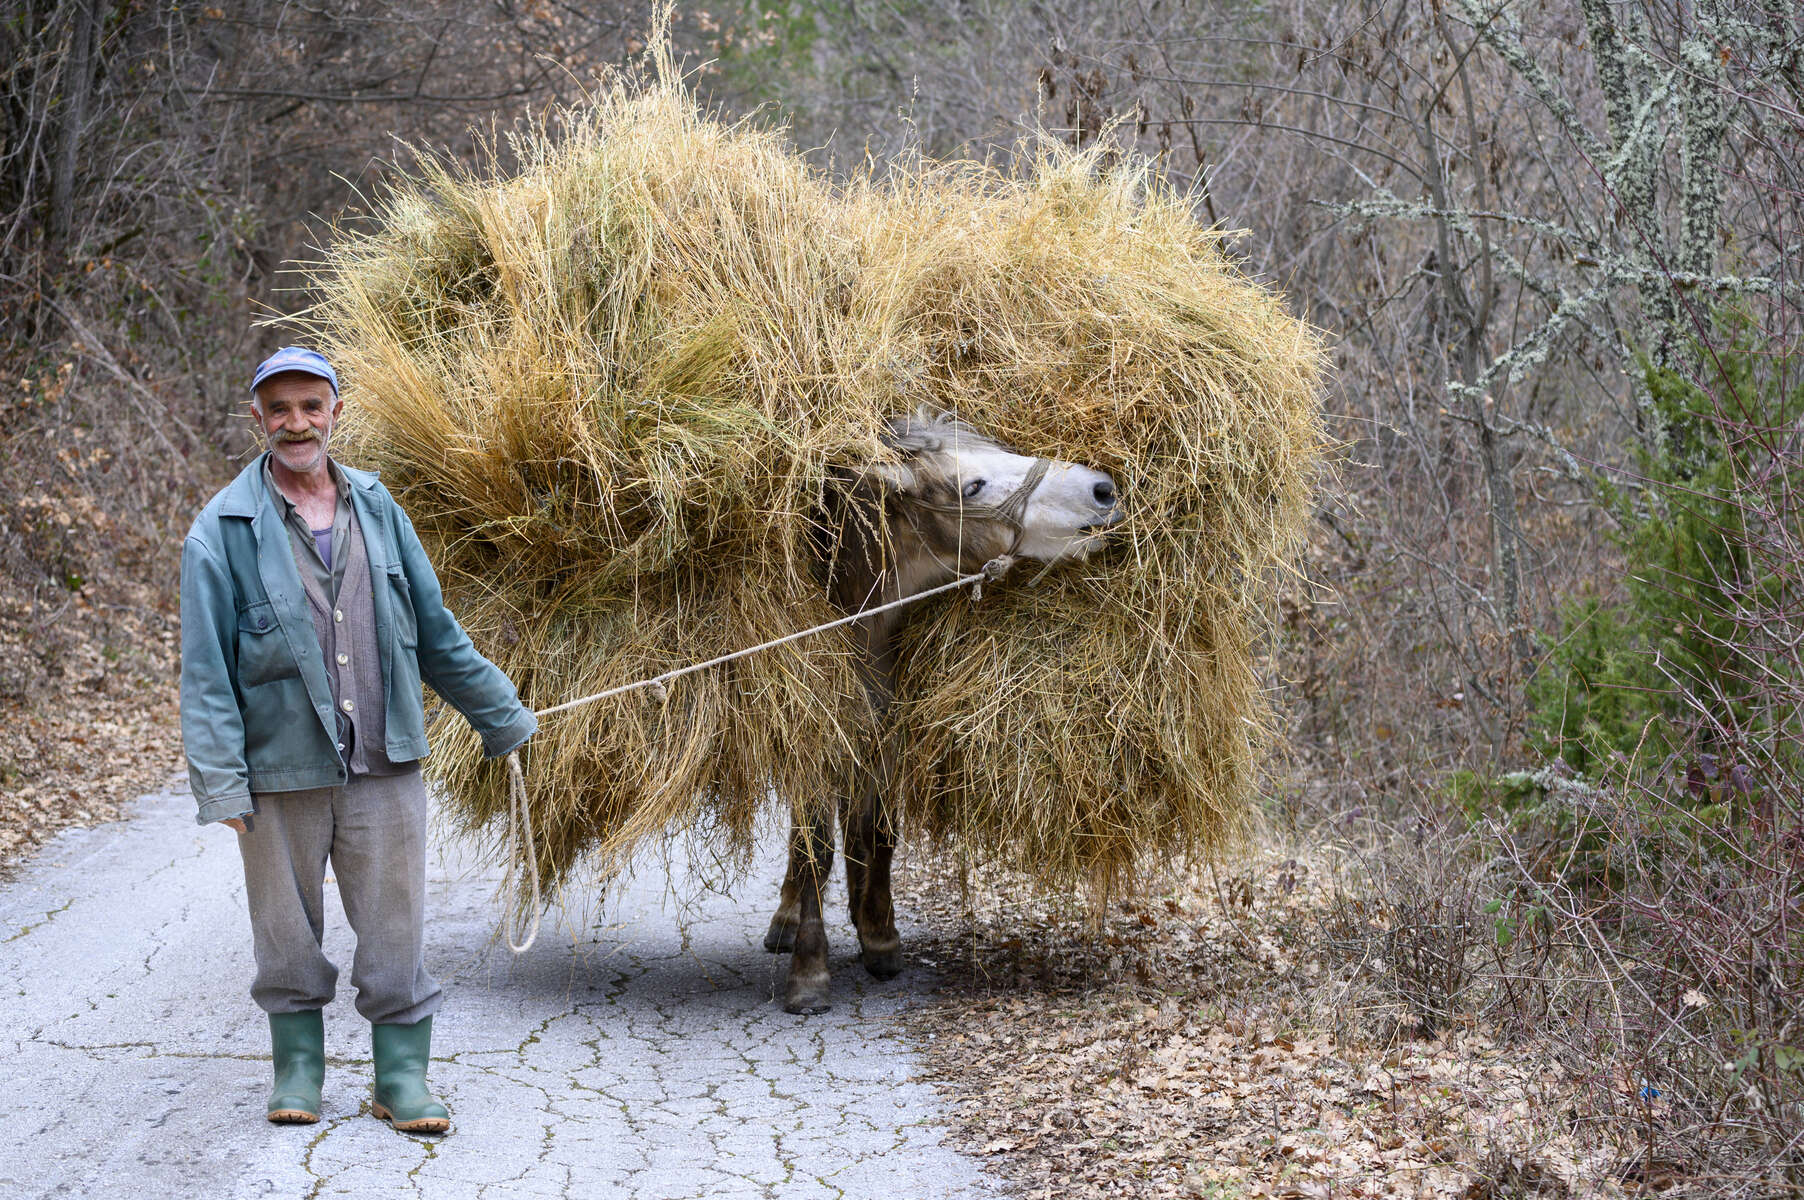 March 6, 2020; A farmer transports hay with his donkey in Poreche, North Macedonia. MBA students from Notre Dame traveled to the region to study agricultural businesses as part of their Business on the Frontlines course which examines the impact of business in societies affected by extreme poverty and conflict. BOTFL provides opportunities for students and alumni to engage and partner with non-profit organizations and multi-national companies to harness the dynamism of businesses to build these communities before they tip into conflict.